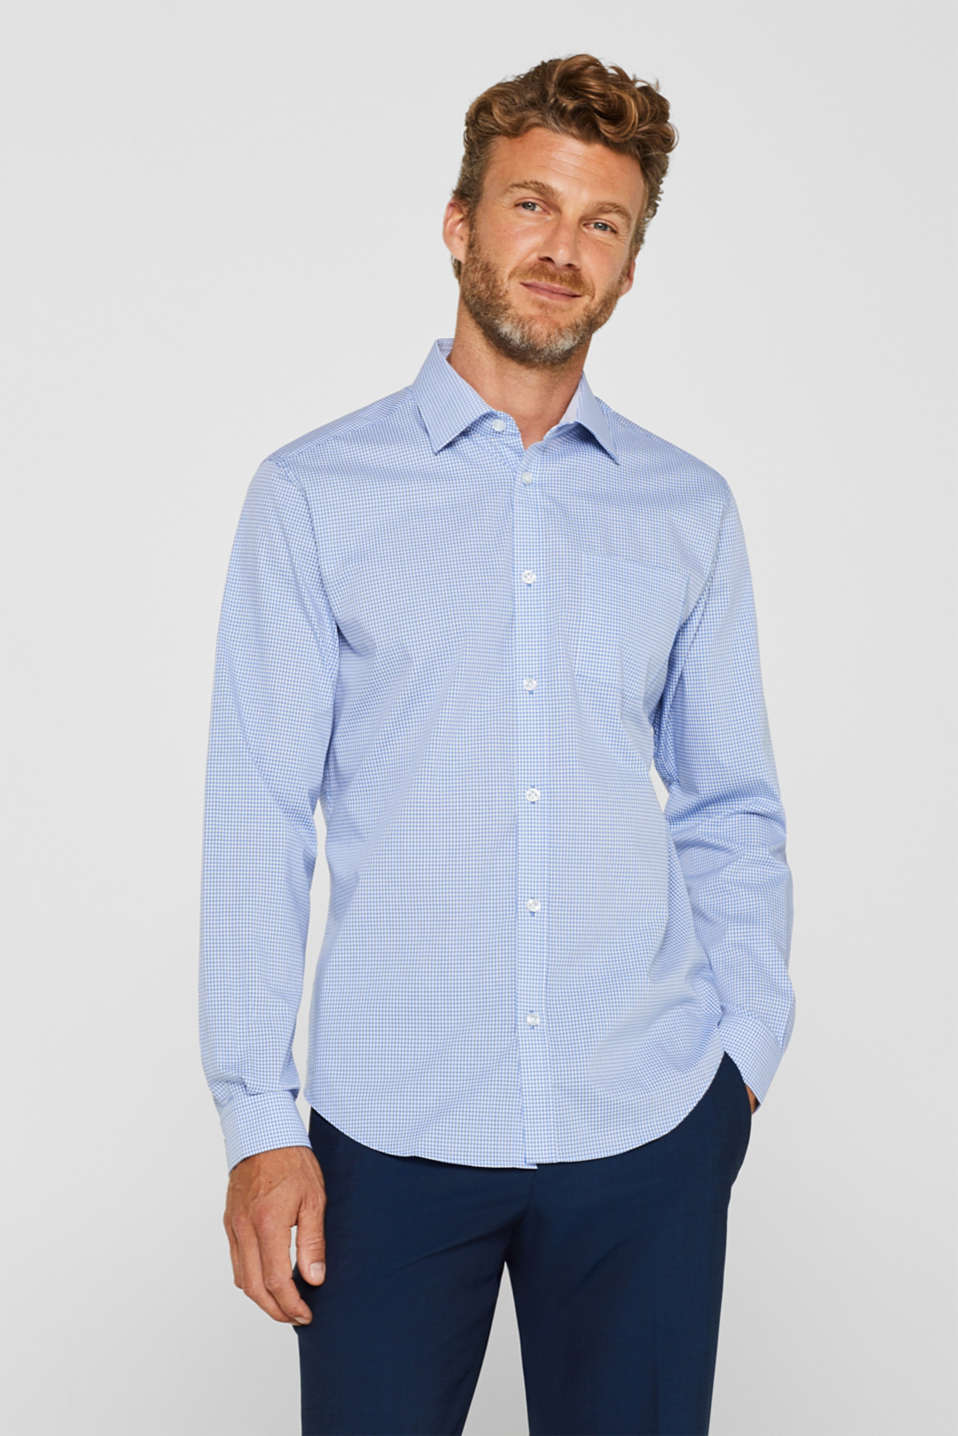 Esprit - Finely-checked shirt, 100% cotton